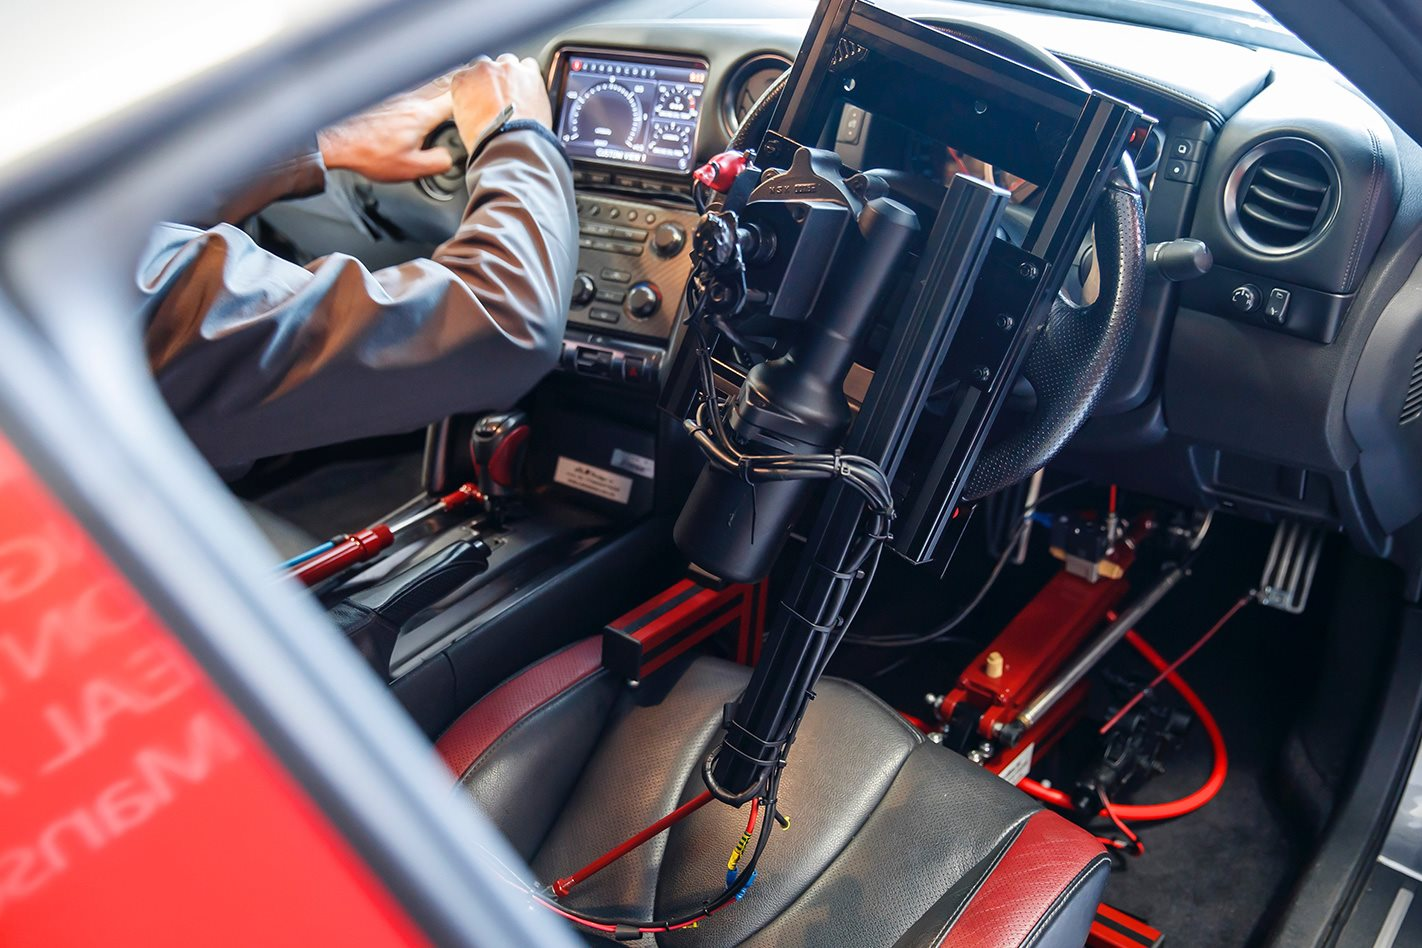 Nissan GT-R Remotely Driven With PS Controller Hits 130 miles per hour